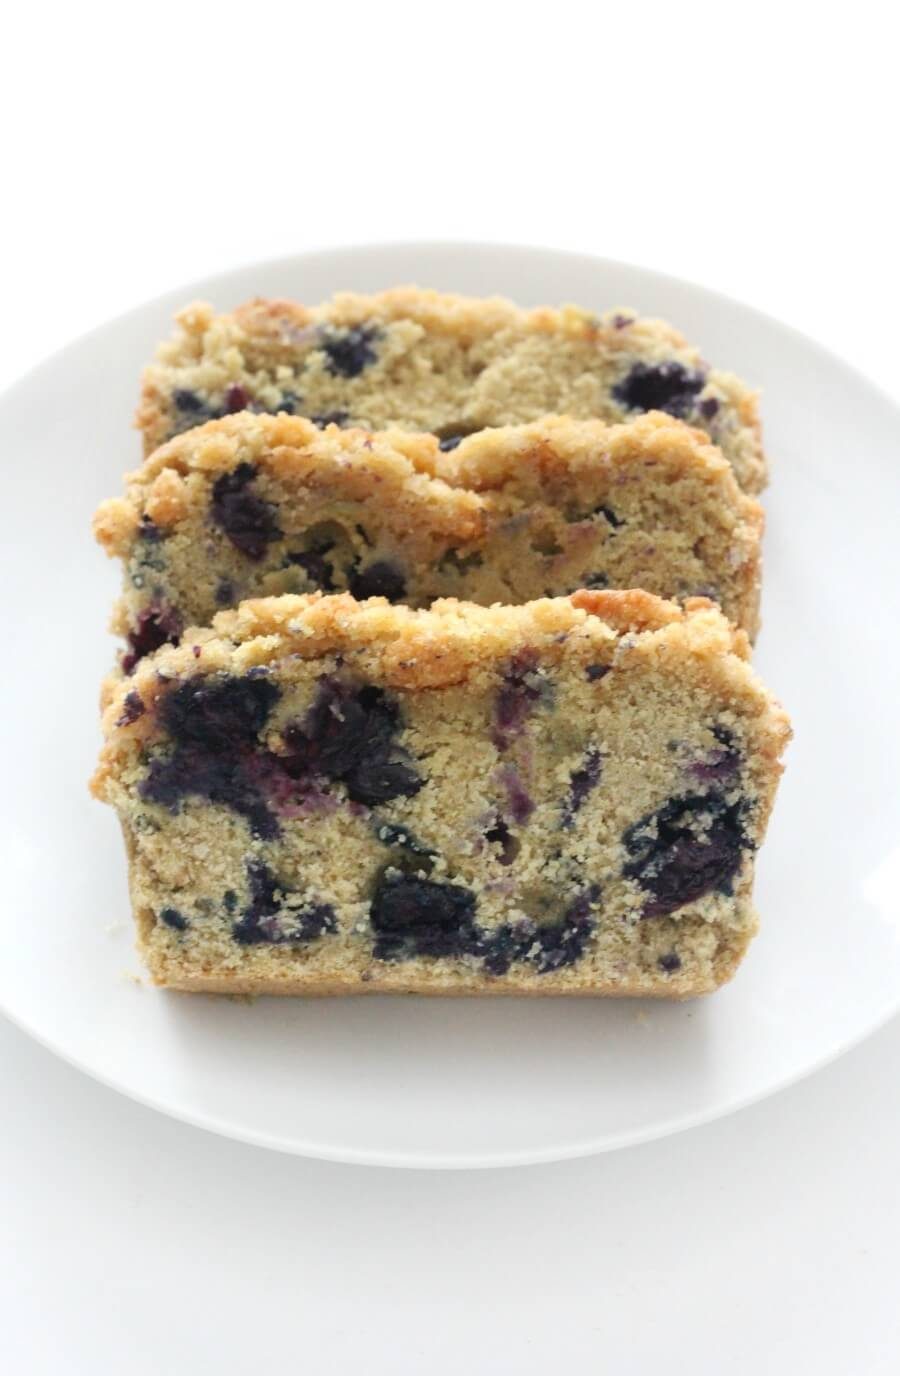 sliced gluten-free blueberry bread on centered white plate